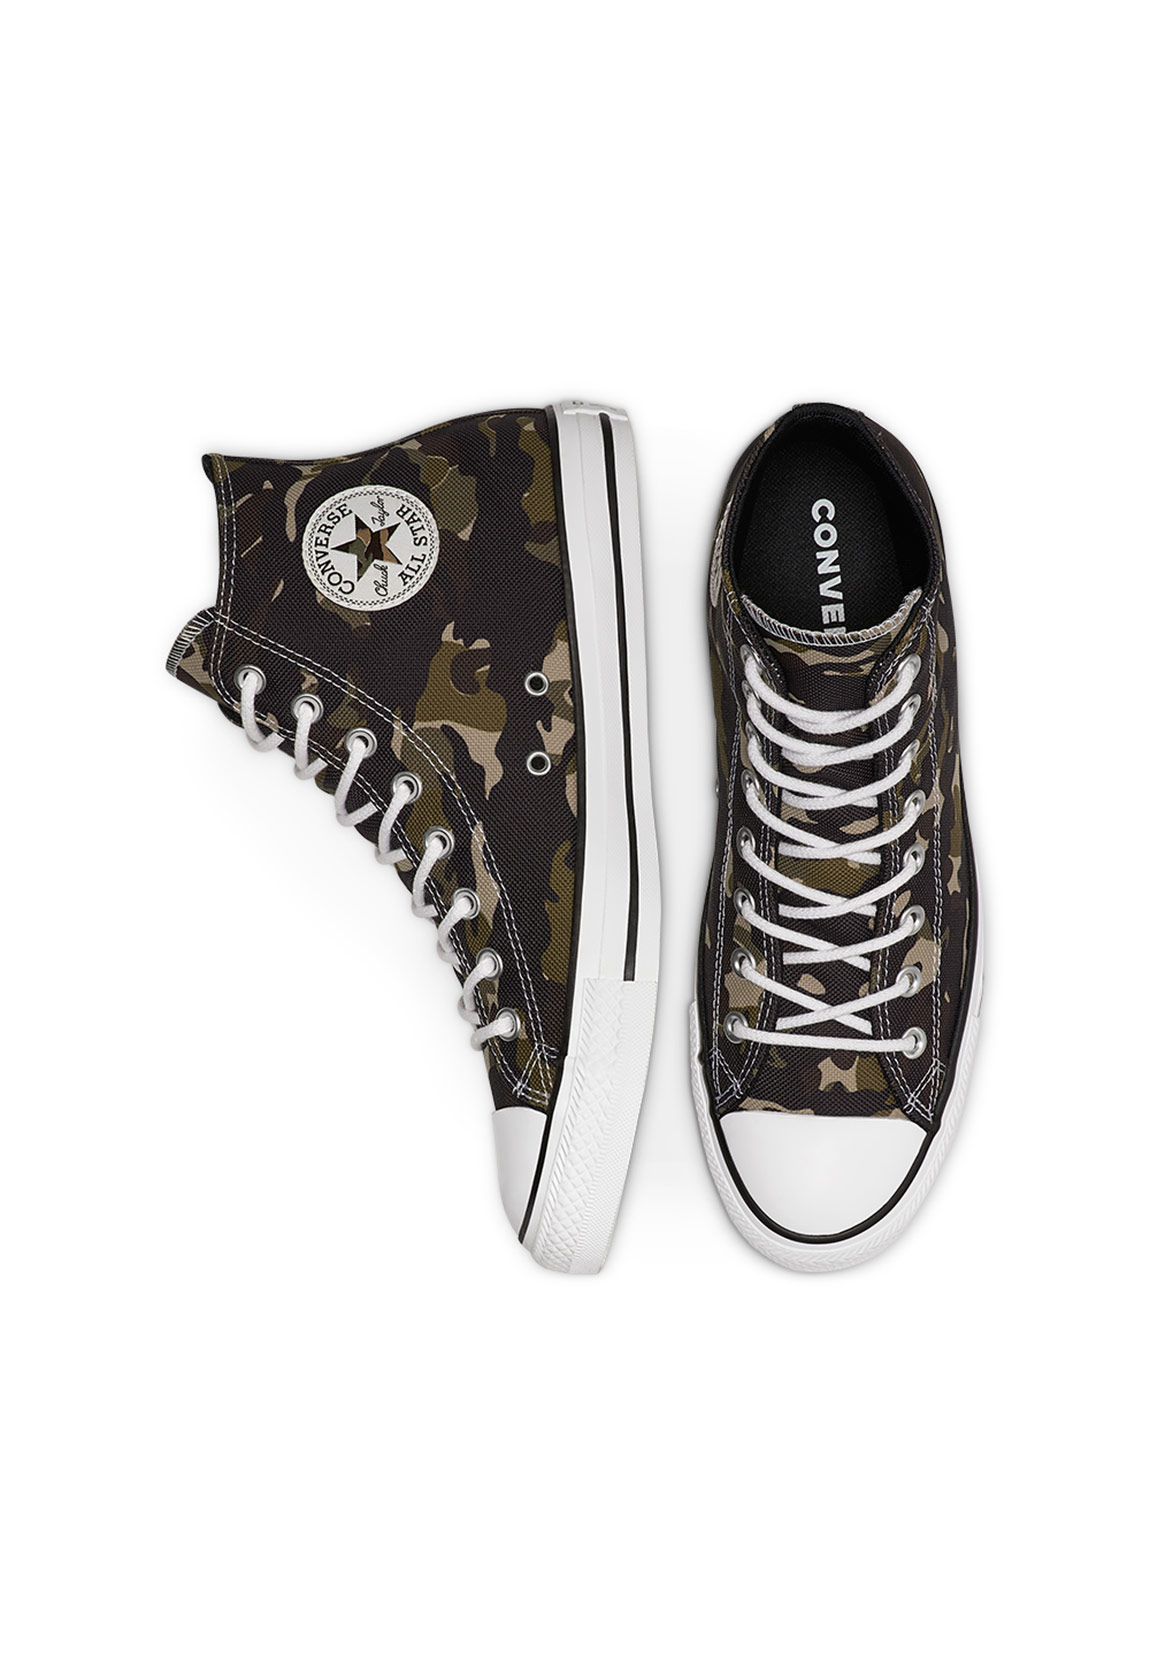 RIO X20 Montreal Converse Chuck Taylor All Star Boots4all